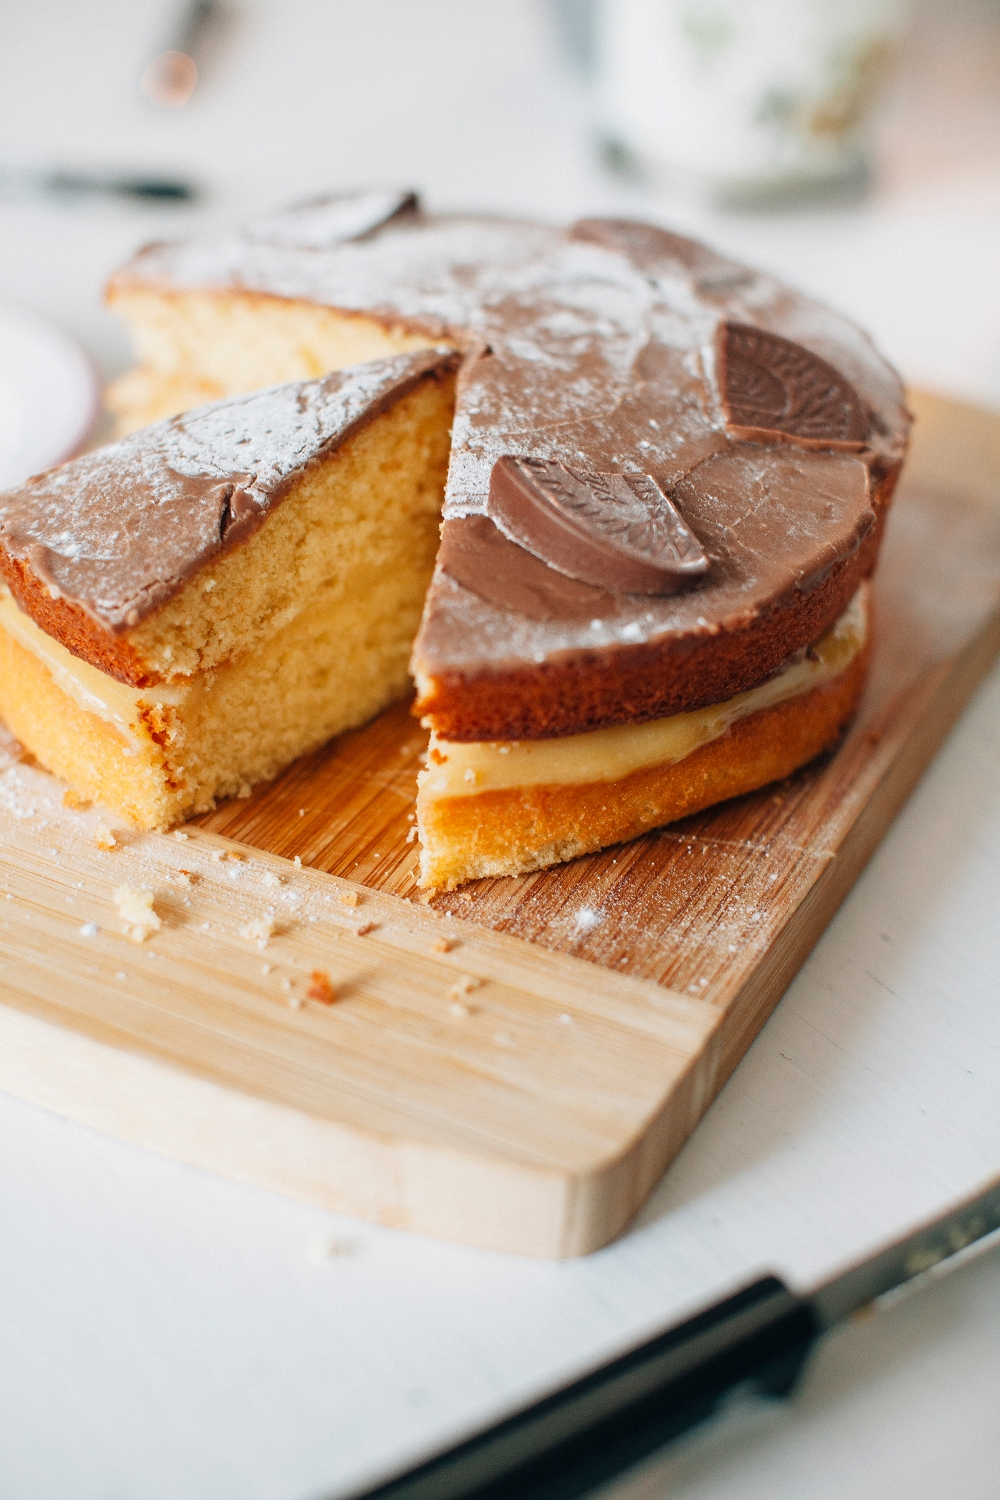 Chocolate Orange Boston Cream Pie Recipe! | LA-COCO-NOIRE